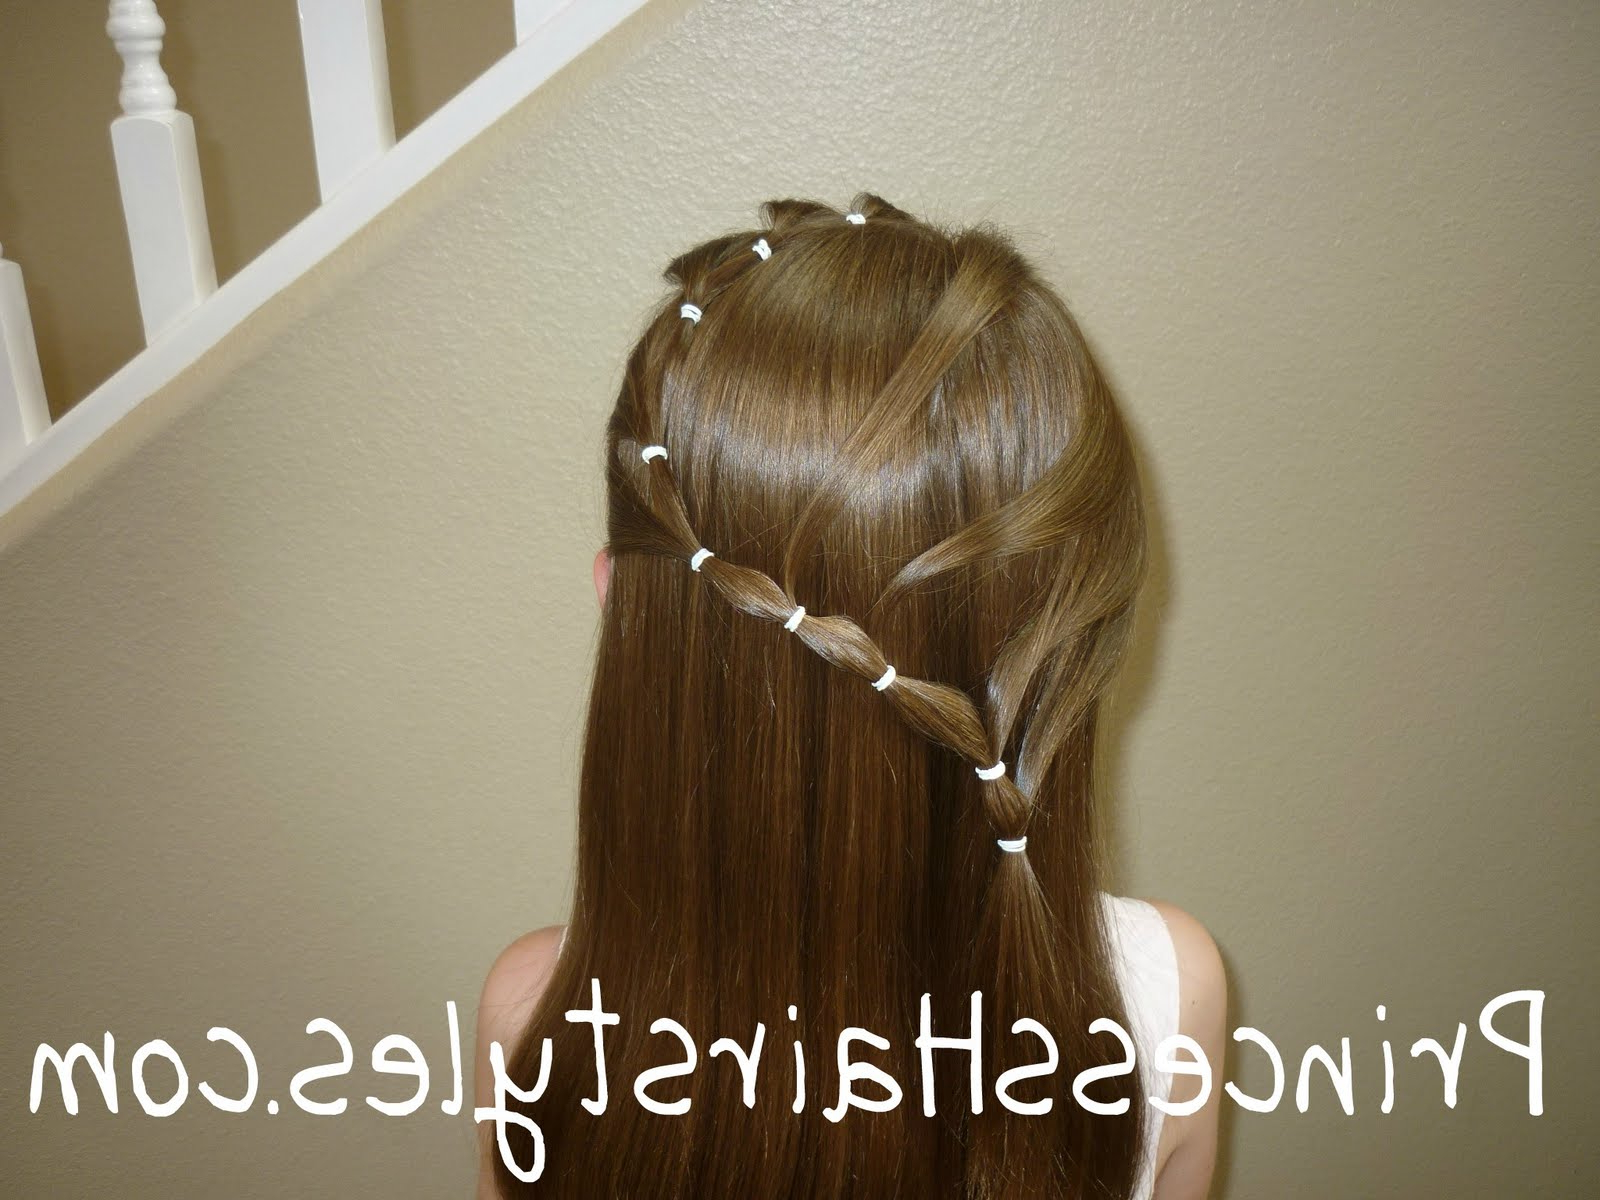 Well Known Curvy Braid Hairstyles And Long Tails Regarding Elastic Curvy Braid Hairstyle (Gallery 16 of 20)